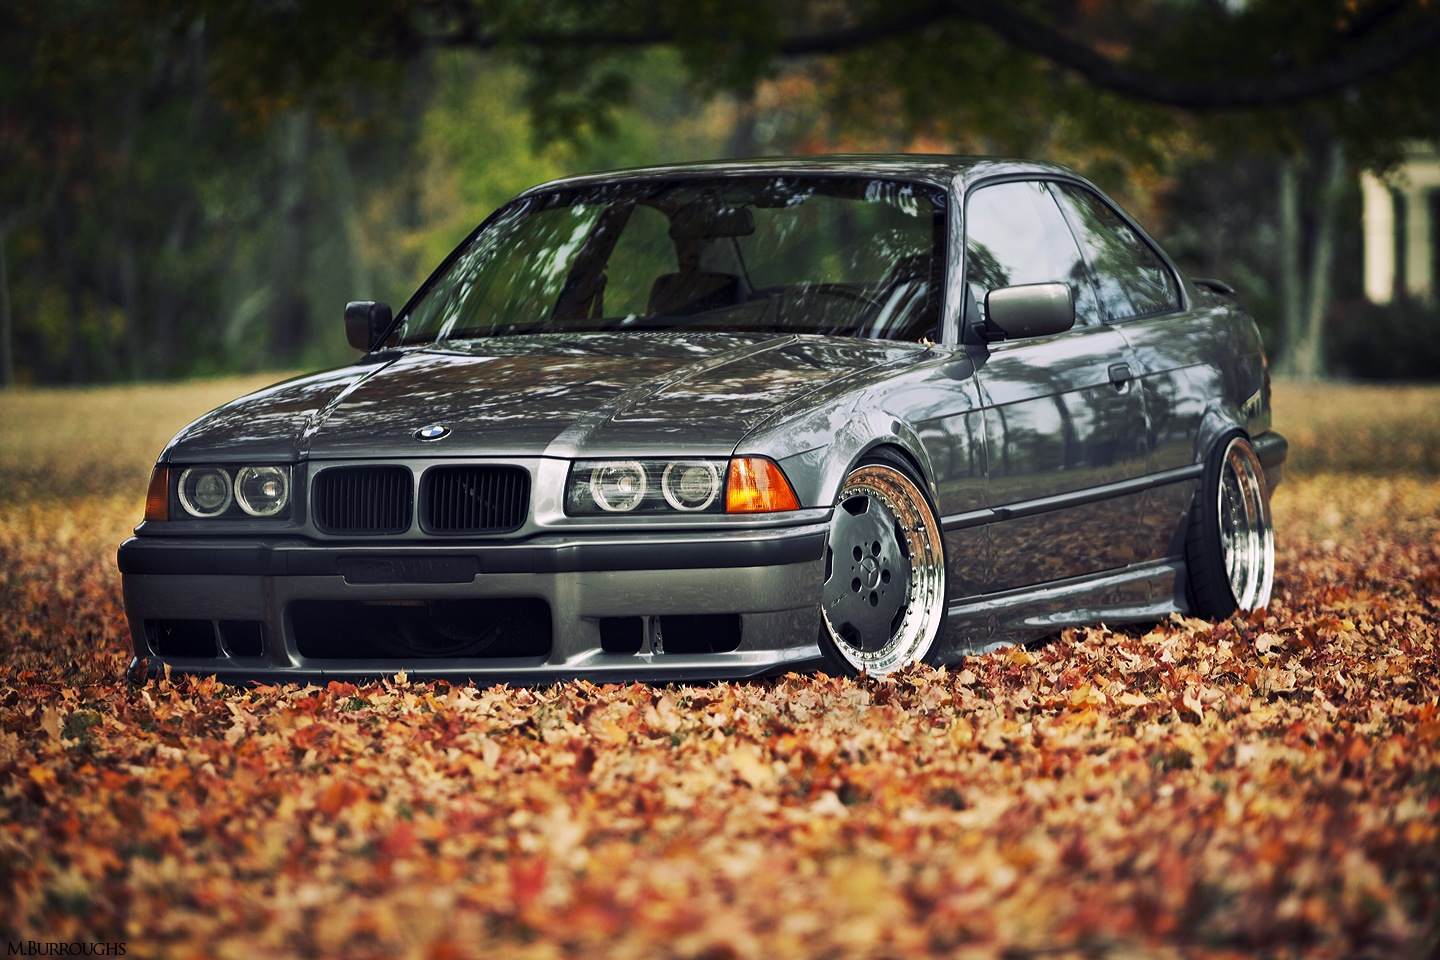 Bmw E36 wallpapers Vehicles HQ Bmw E36 pictures 4K Wallpapers 2019 1440x960